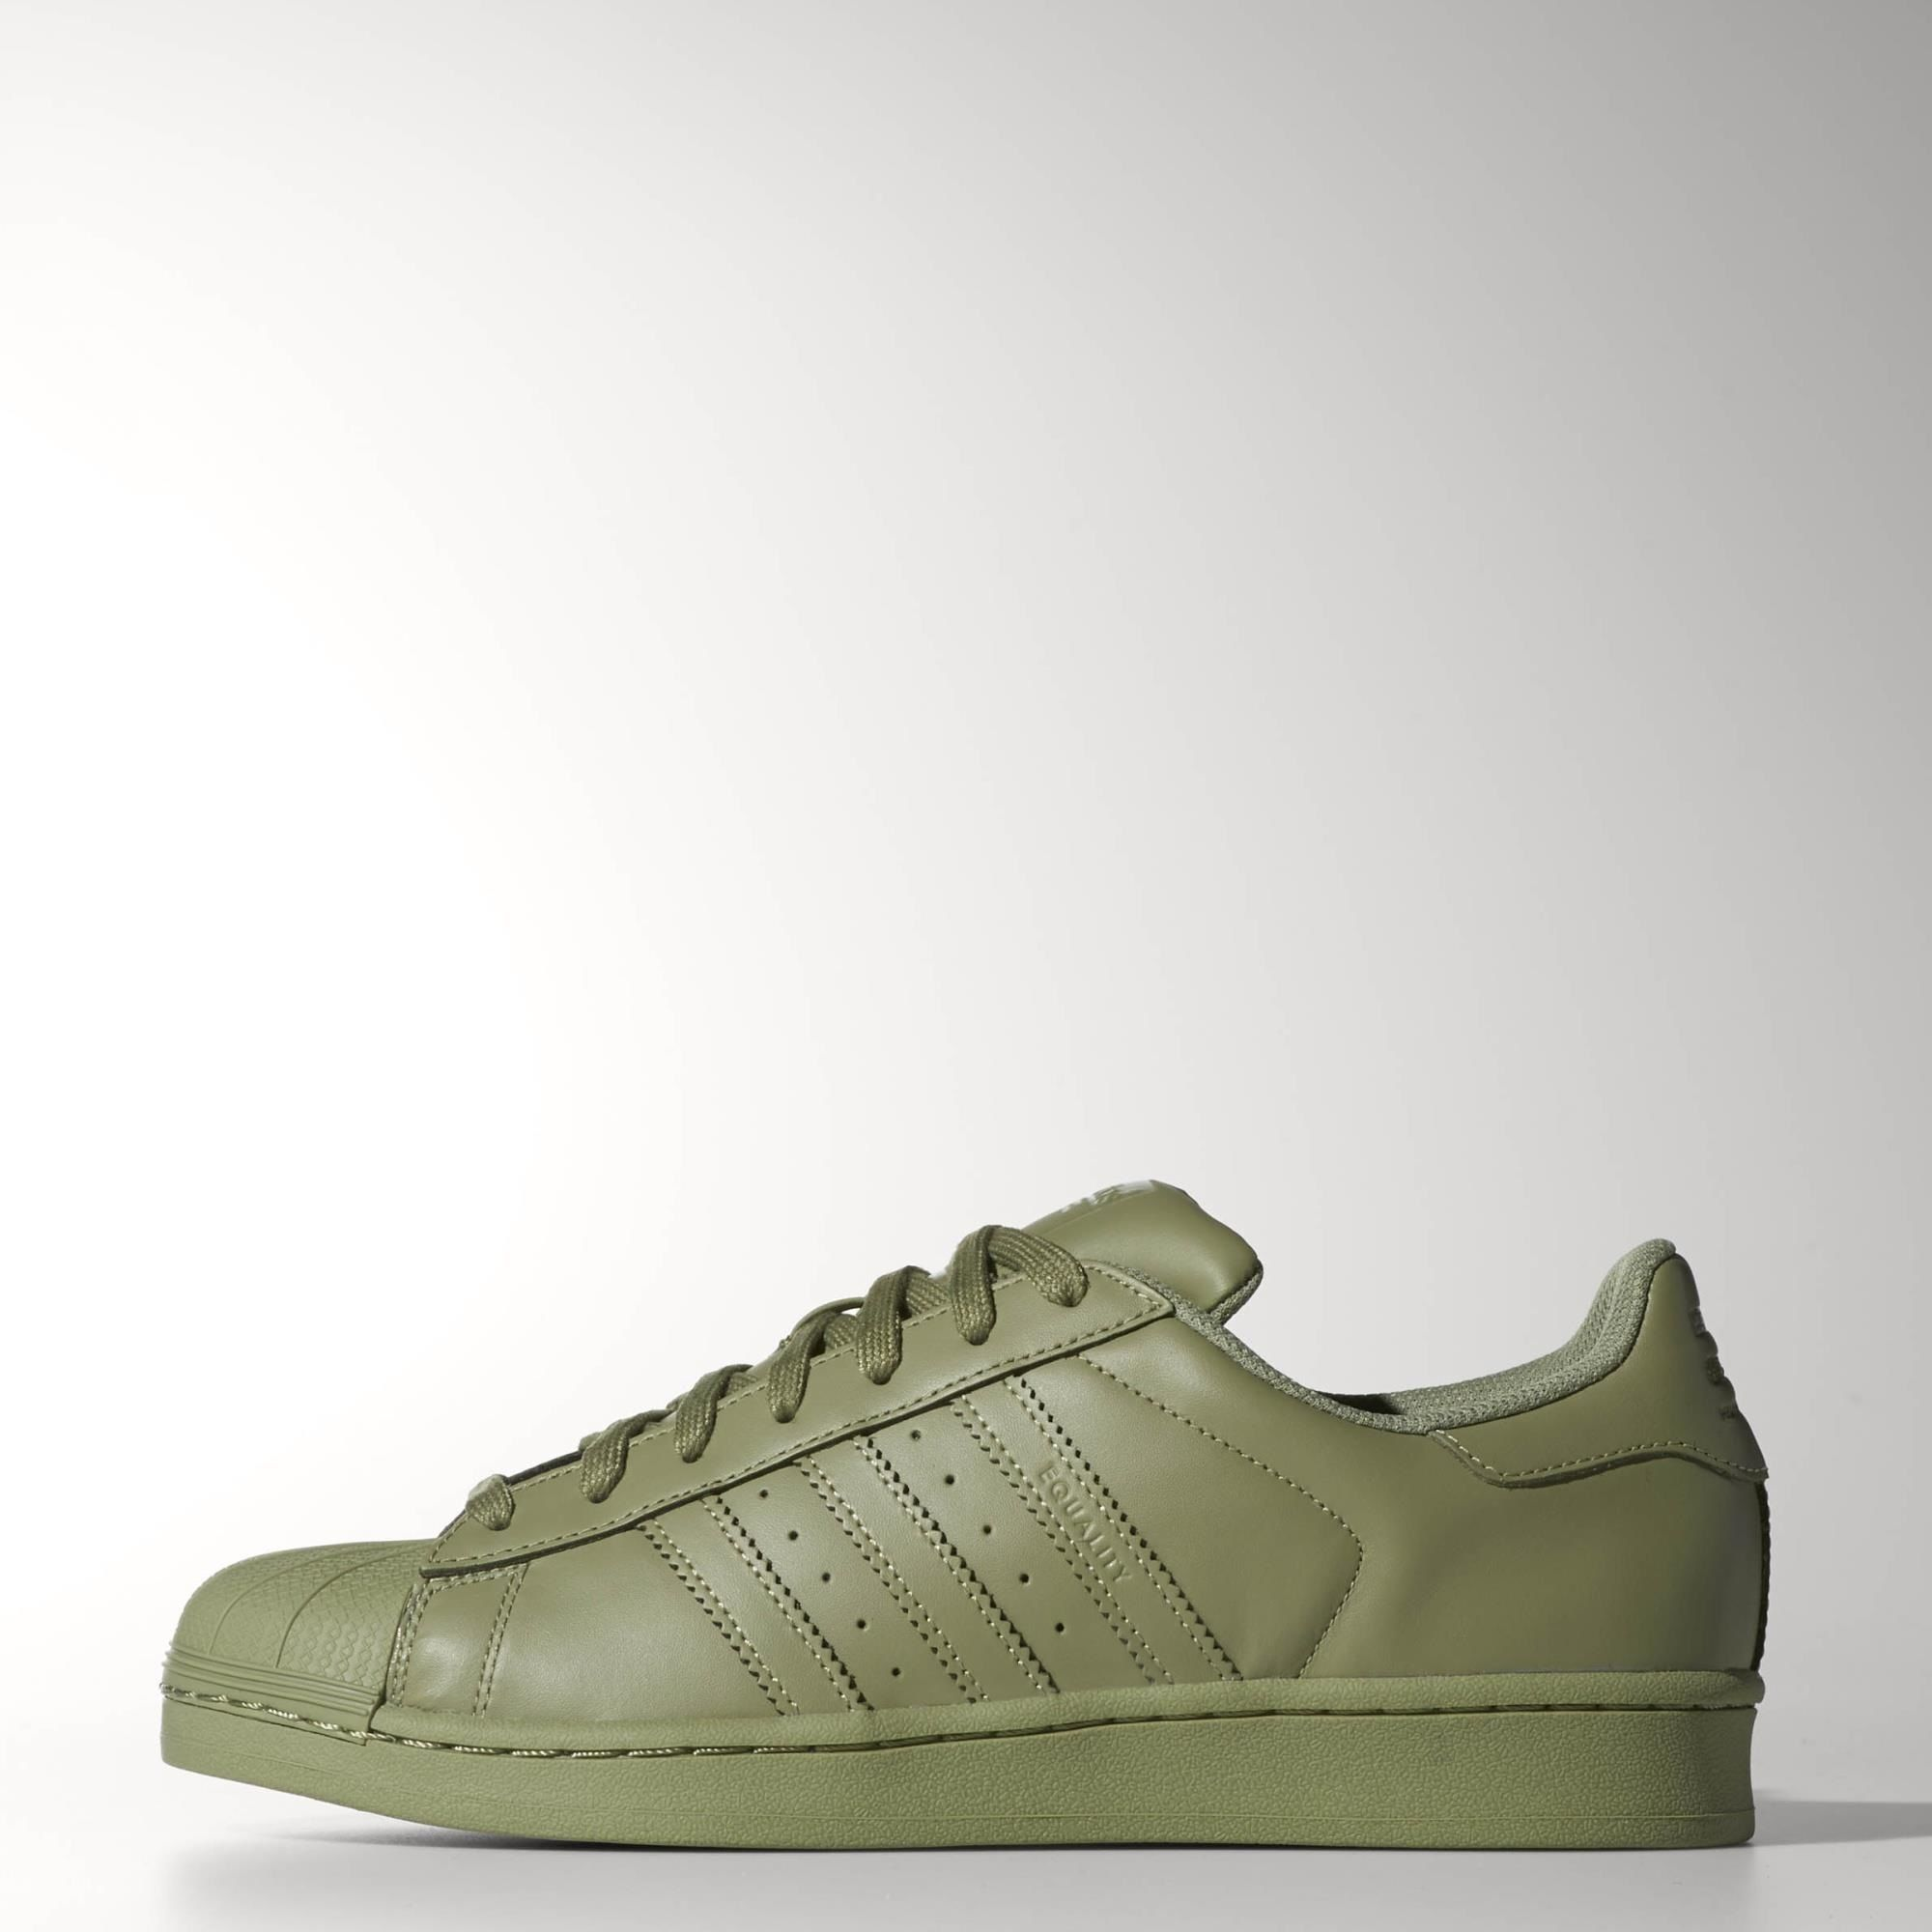 adidas - Superstar Supercolor Pack in Shift Olive